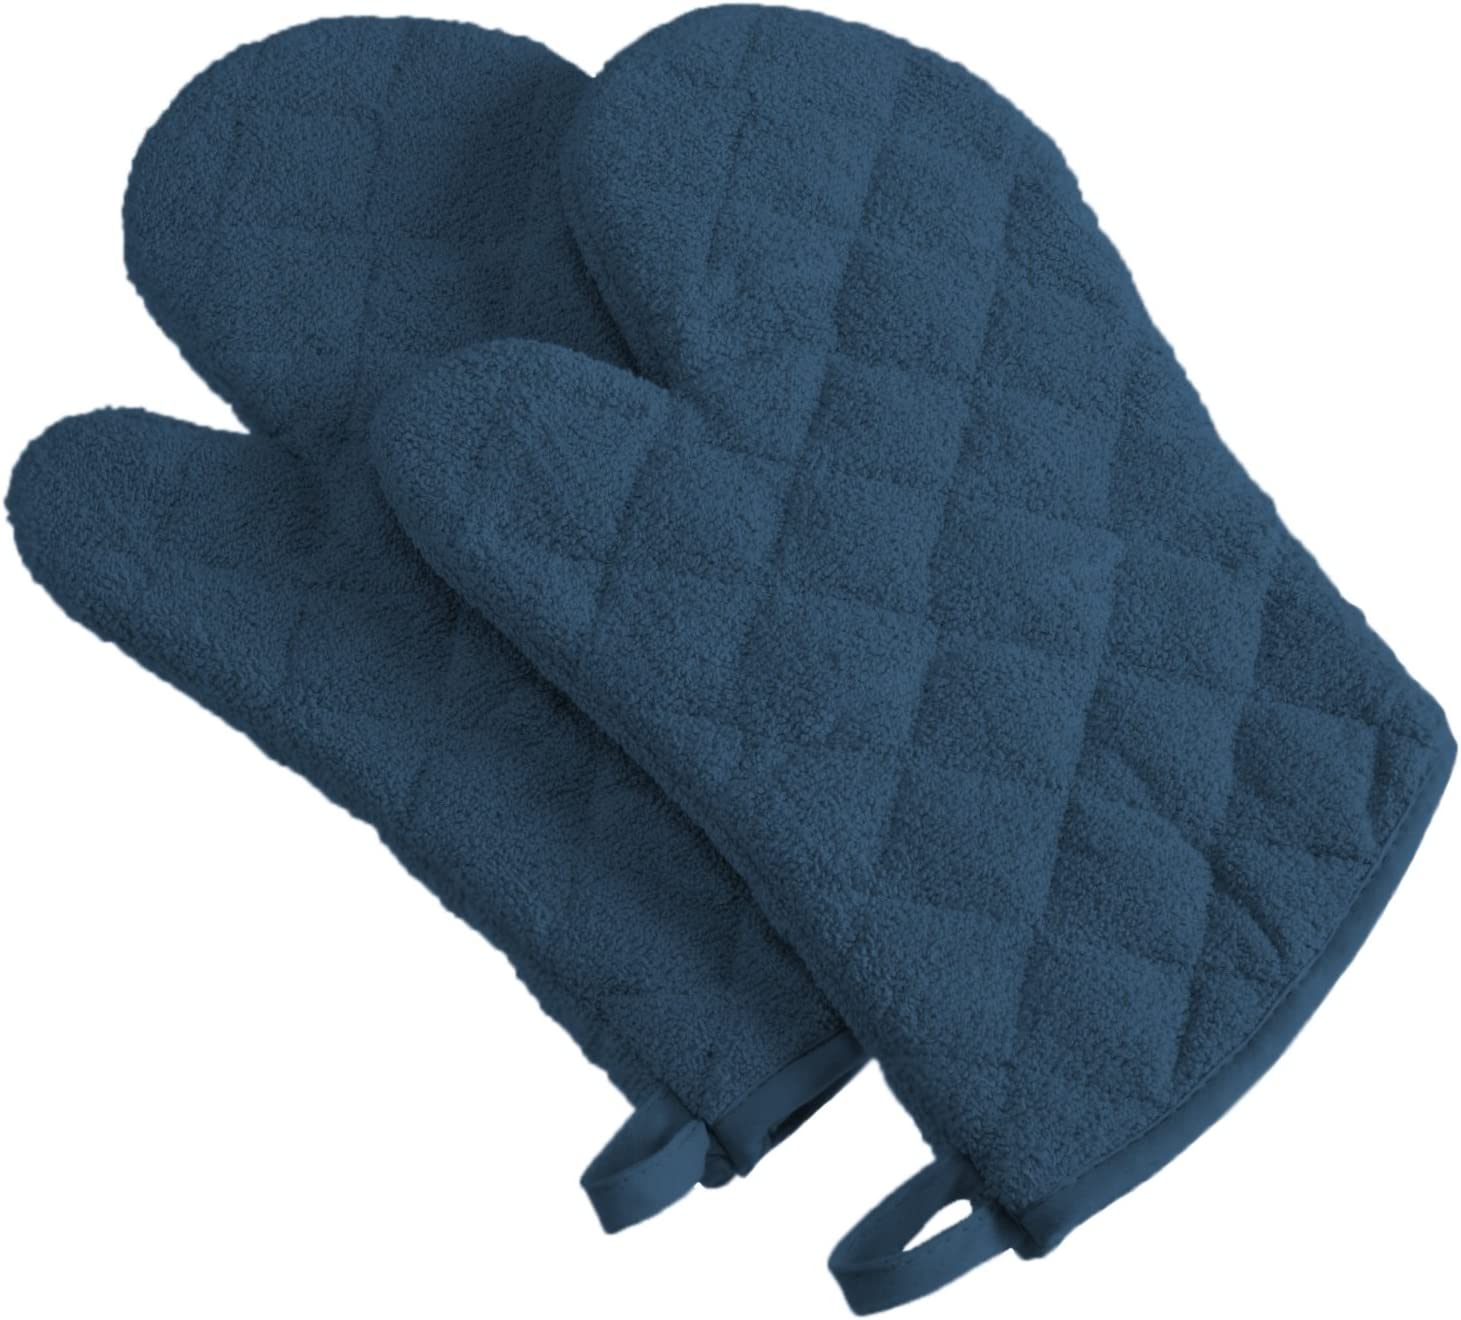 DII 100% Cotton, Quilted Terry Oven Set Machine Washable, Heat Resistant with Hanging Loop, Ovenmitt, Blue 2 Piece